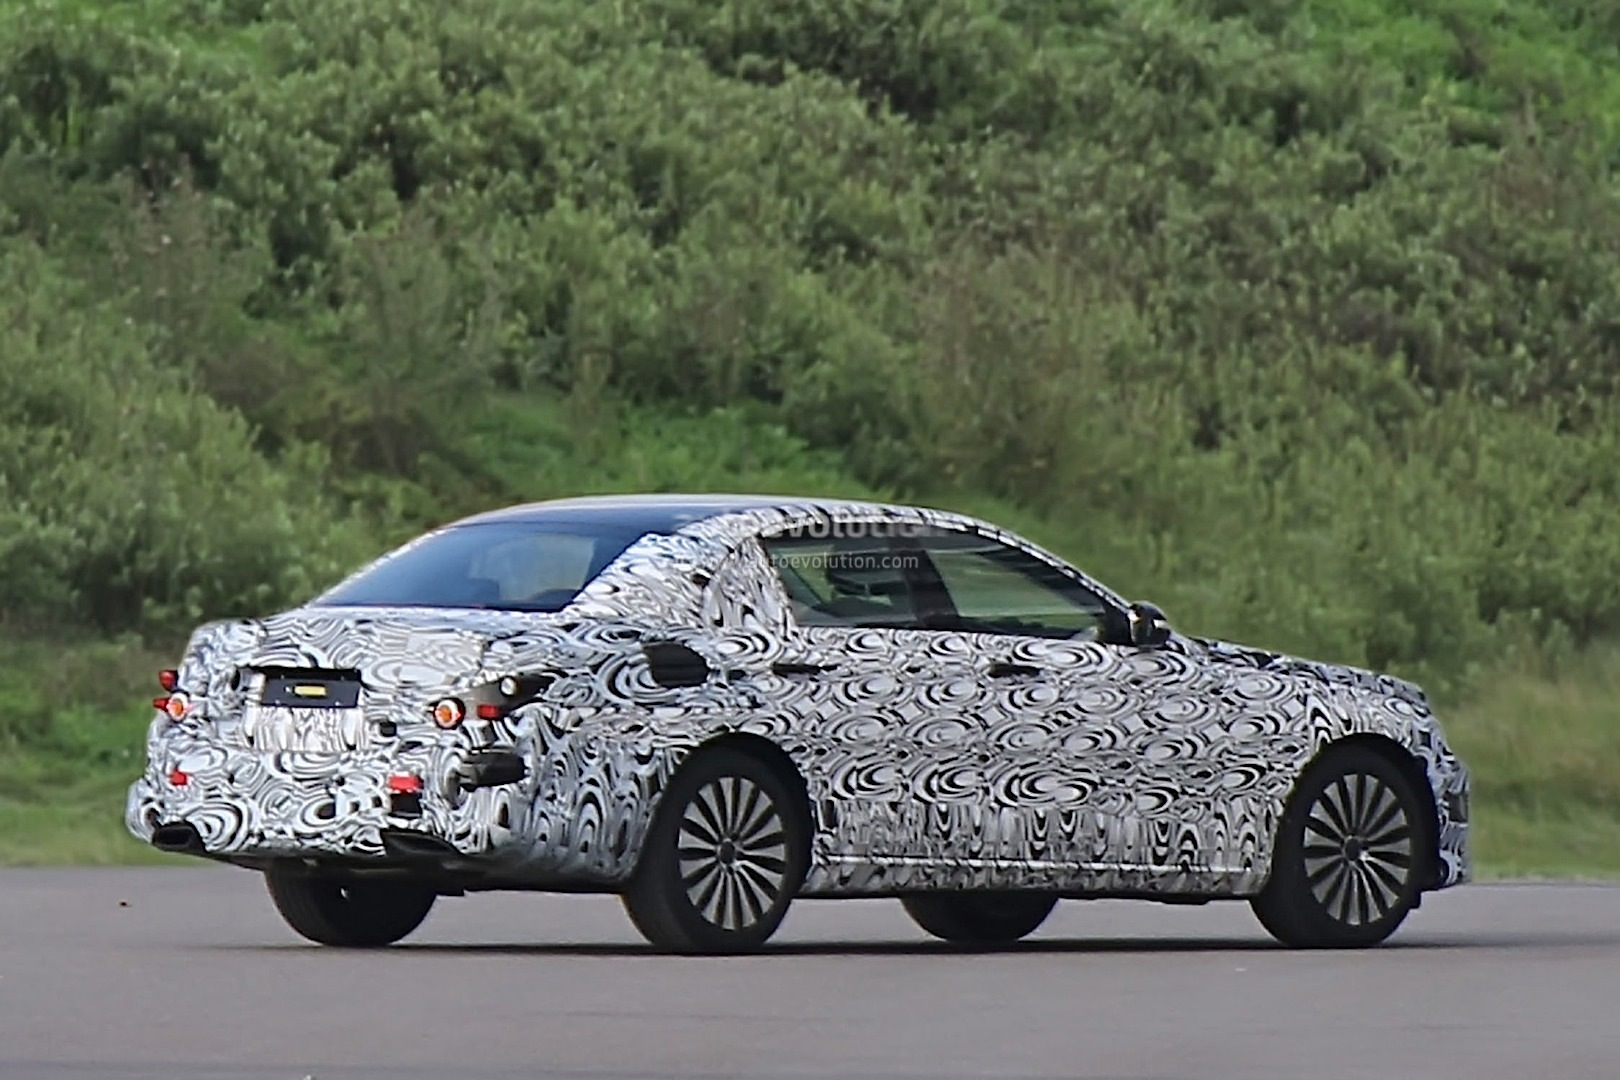 new-2016-mercedes-benz-e-class-spied-for-the-first-time_6.jpg